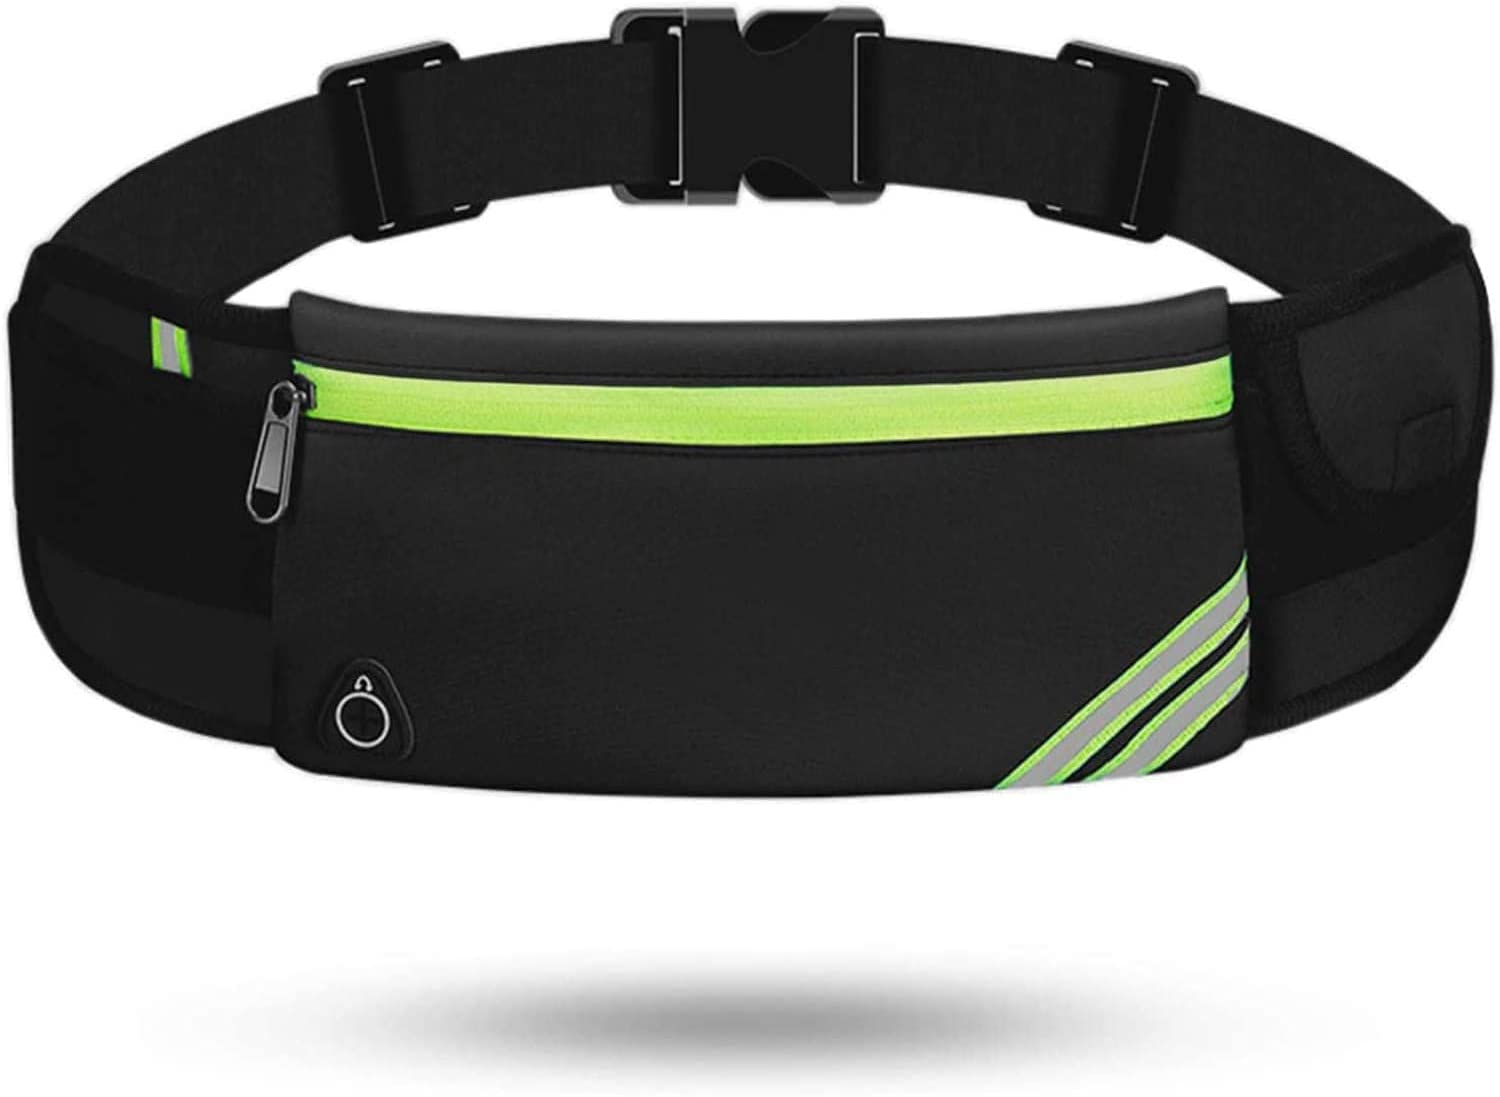 Running Belt Pouch Waist Pack Bag, Black Fanny Pack, Bounce Free Jogging Pocket Belt - Phone Holder for Running Accessories for iPhone XR 11 12 Pro Max